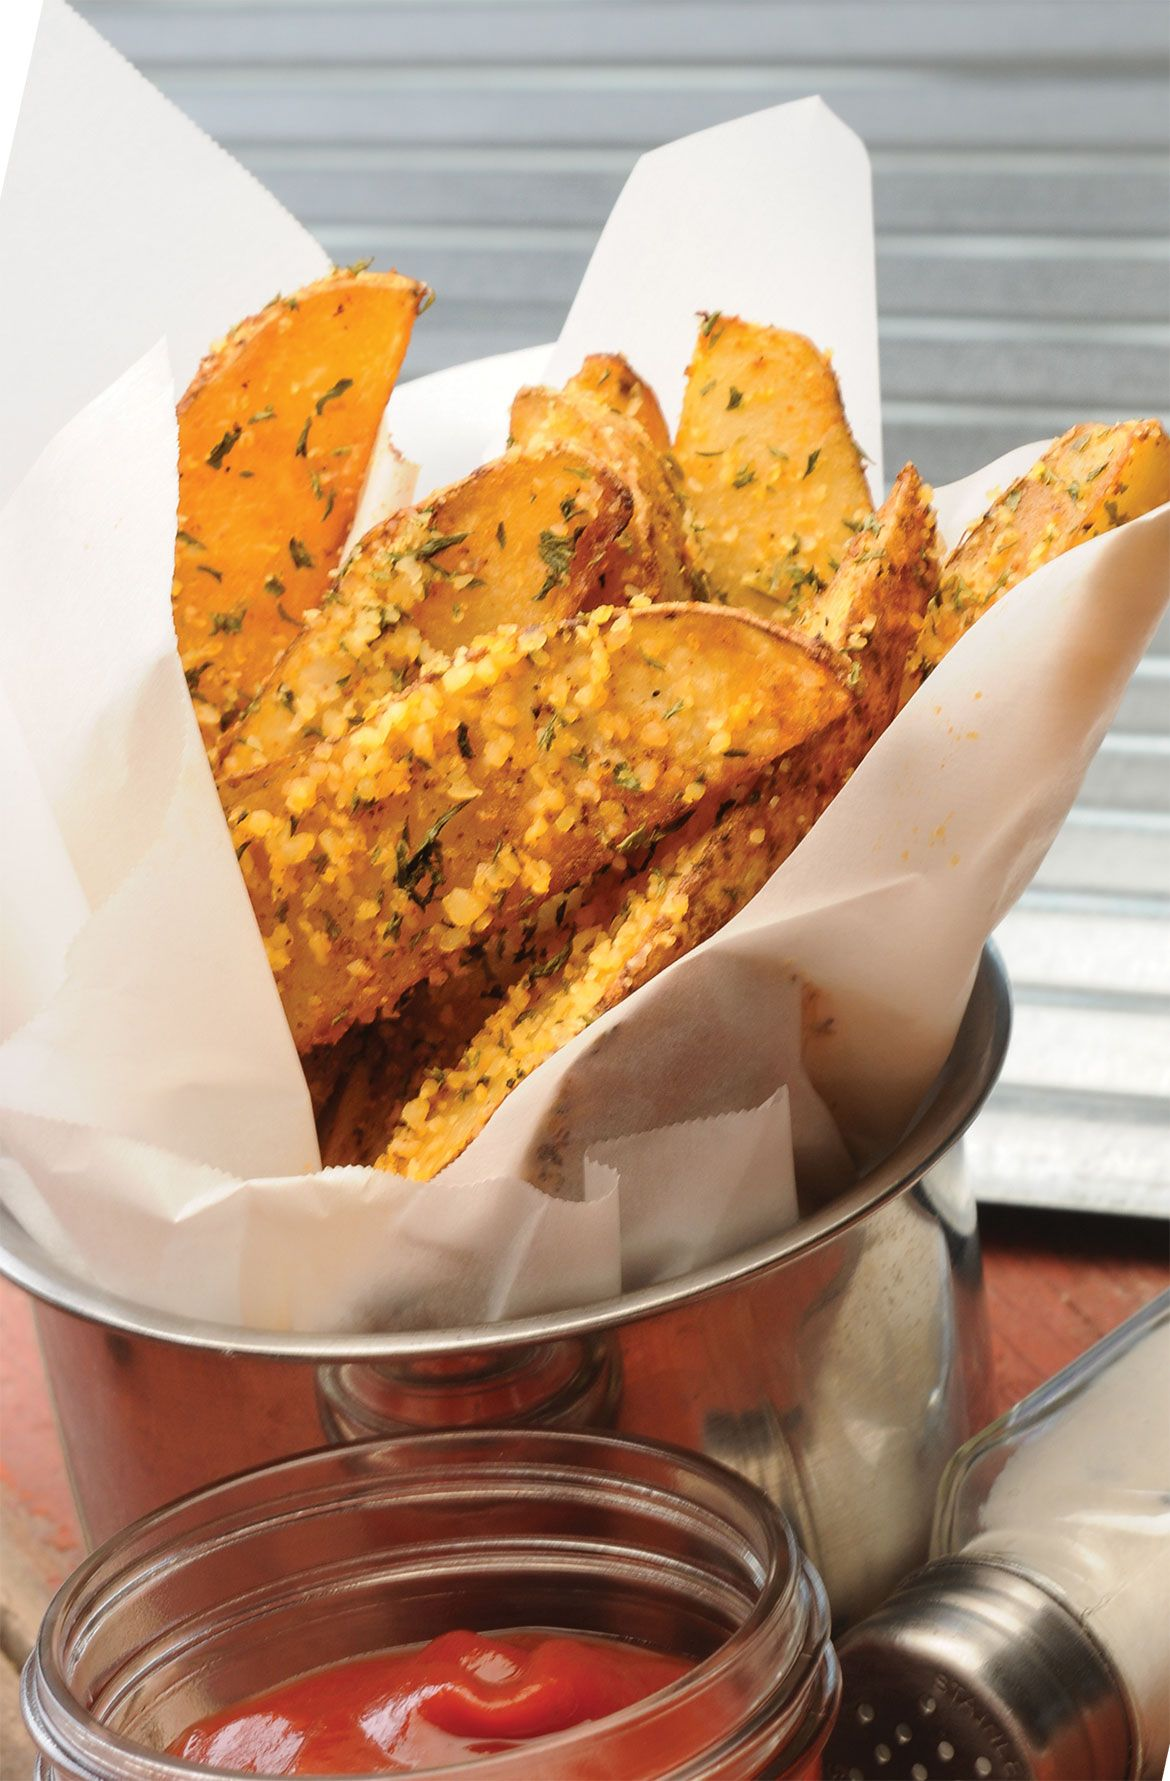 Potato Wedges or Fries:  Who can resist the temptation of a French Fry?  Here's a healthier and tastier alternative for your family to enjoy (without the guilt!).